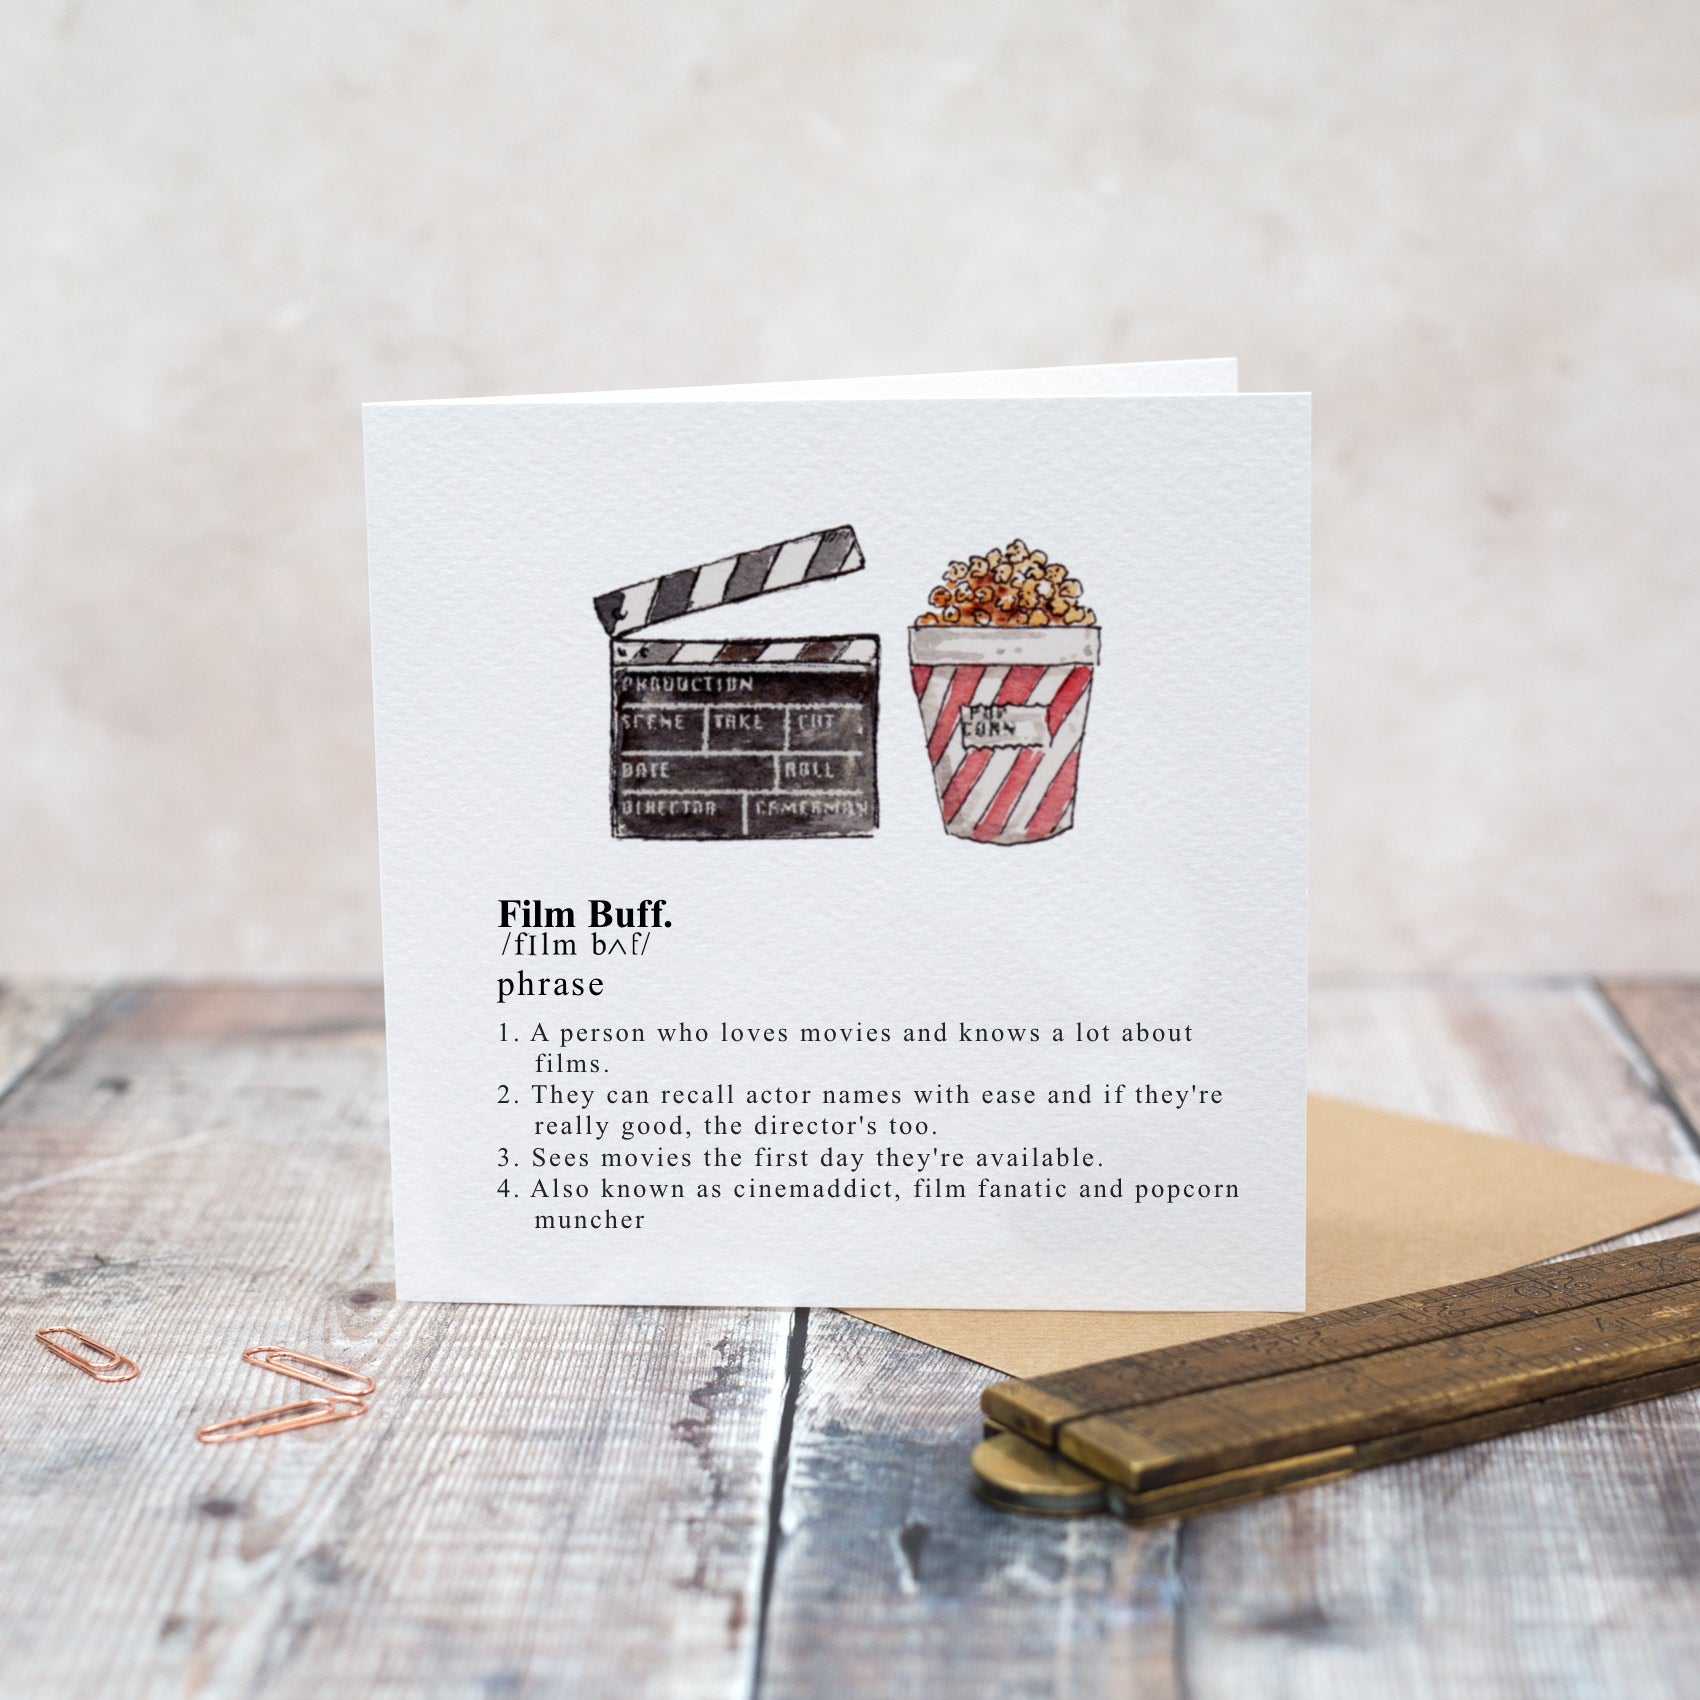 Toasted Crumpet Film Buff Blank Card